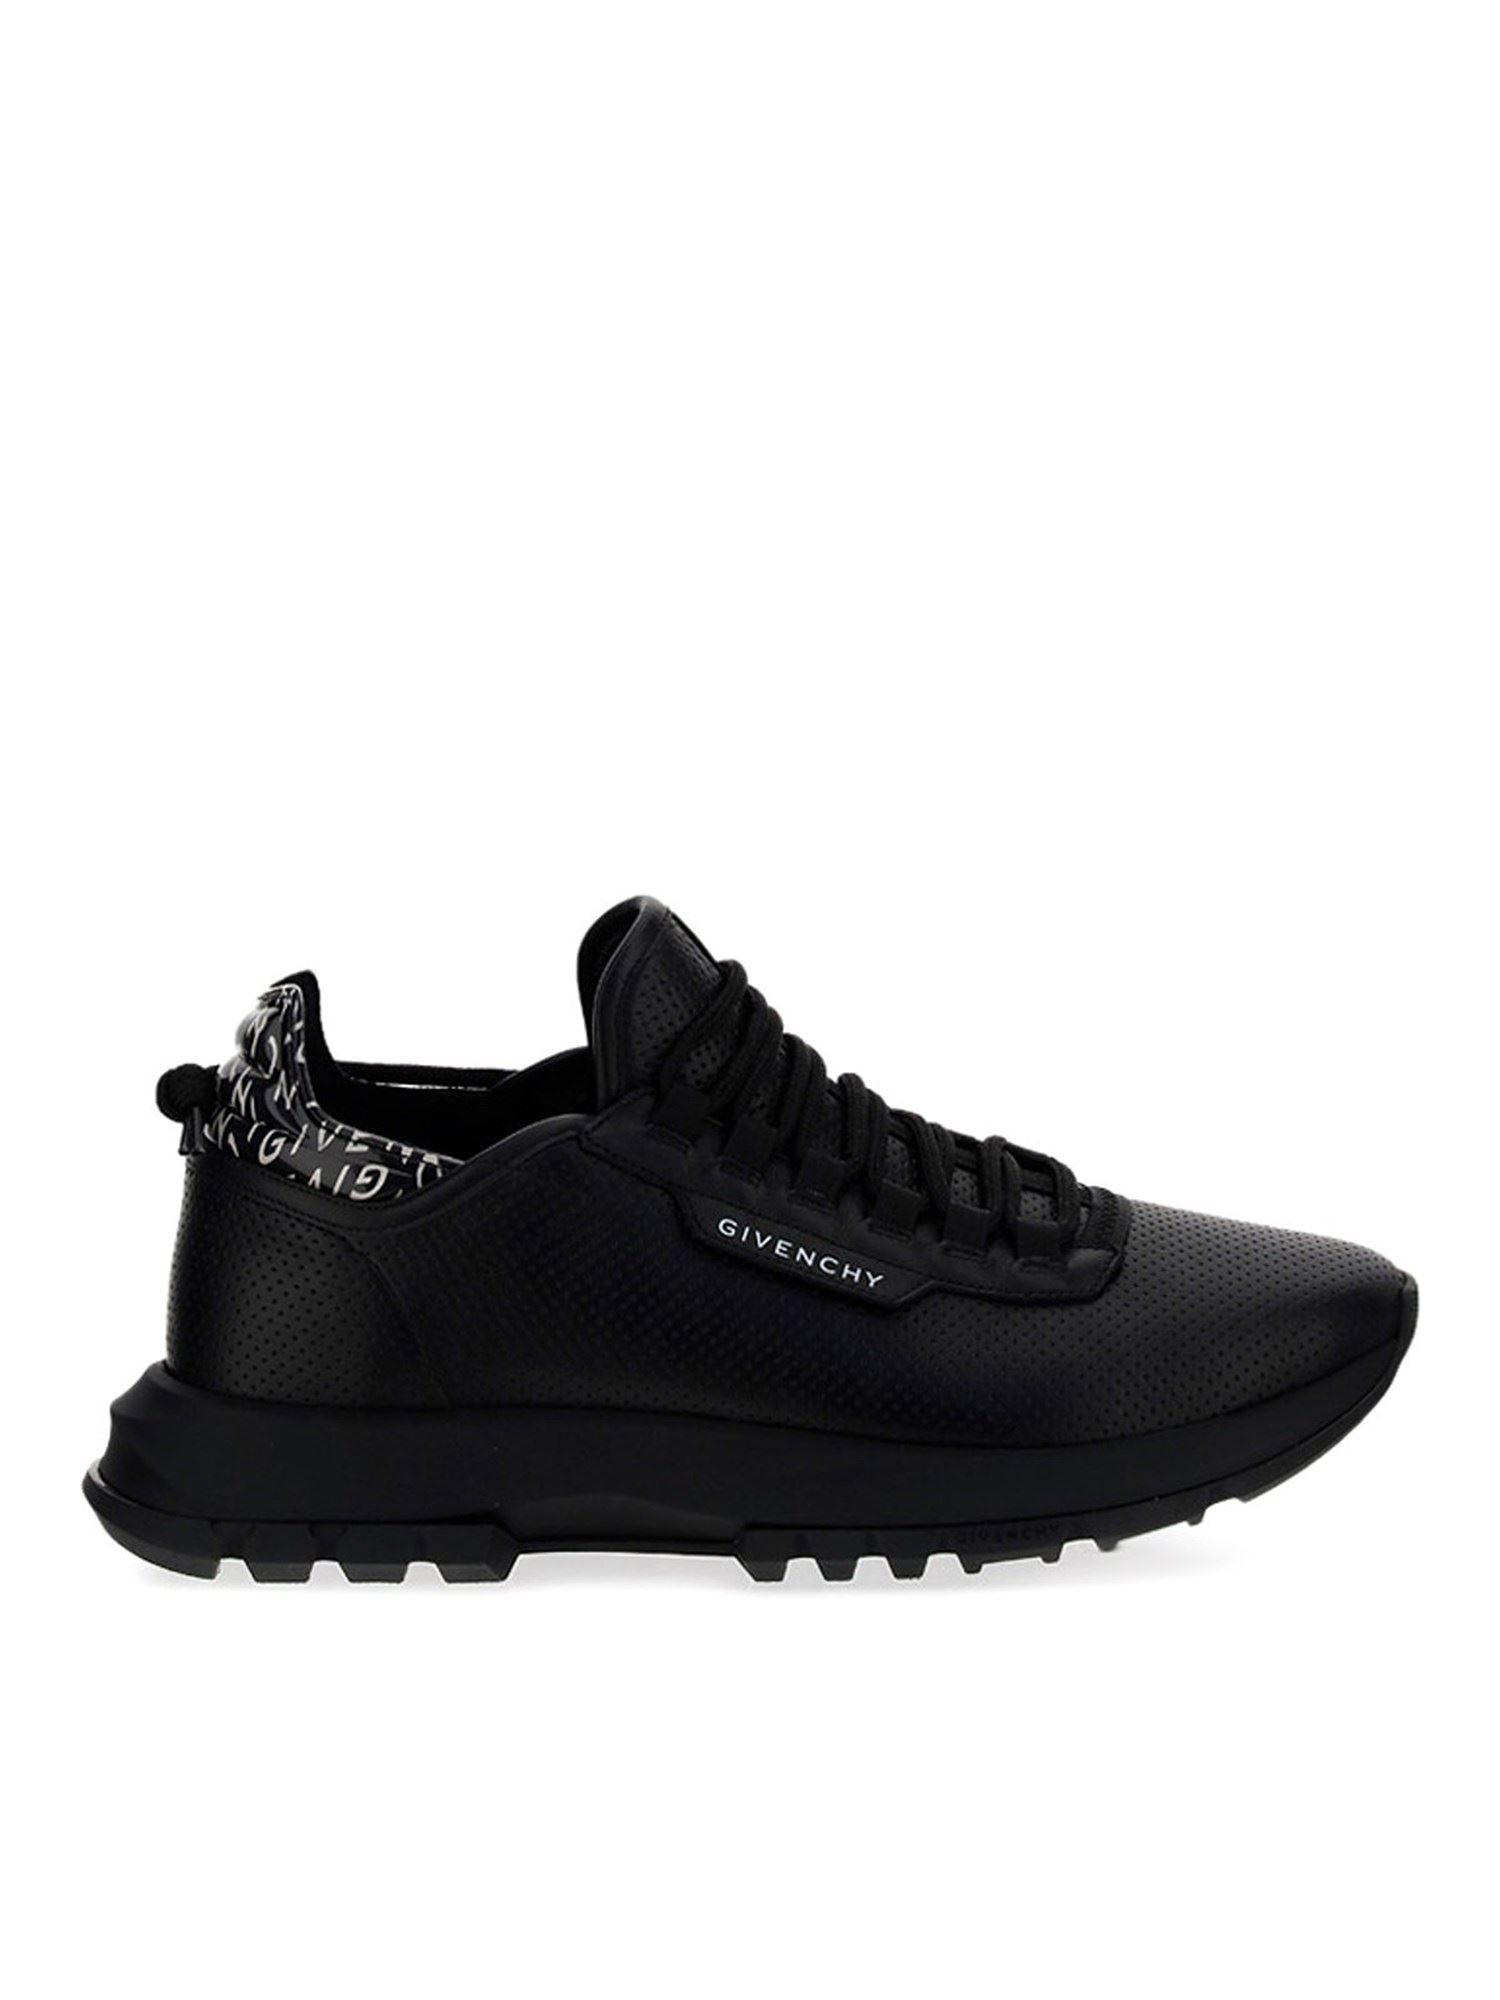 Givenchy SPECTRE RUNNING SNEAKERS IN BLACK